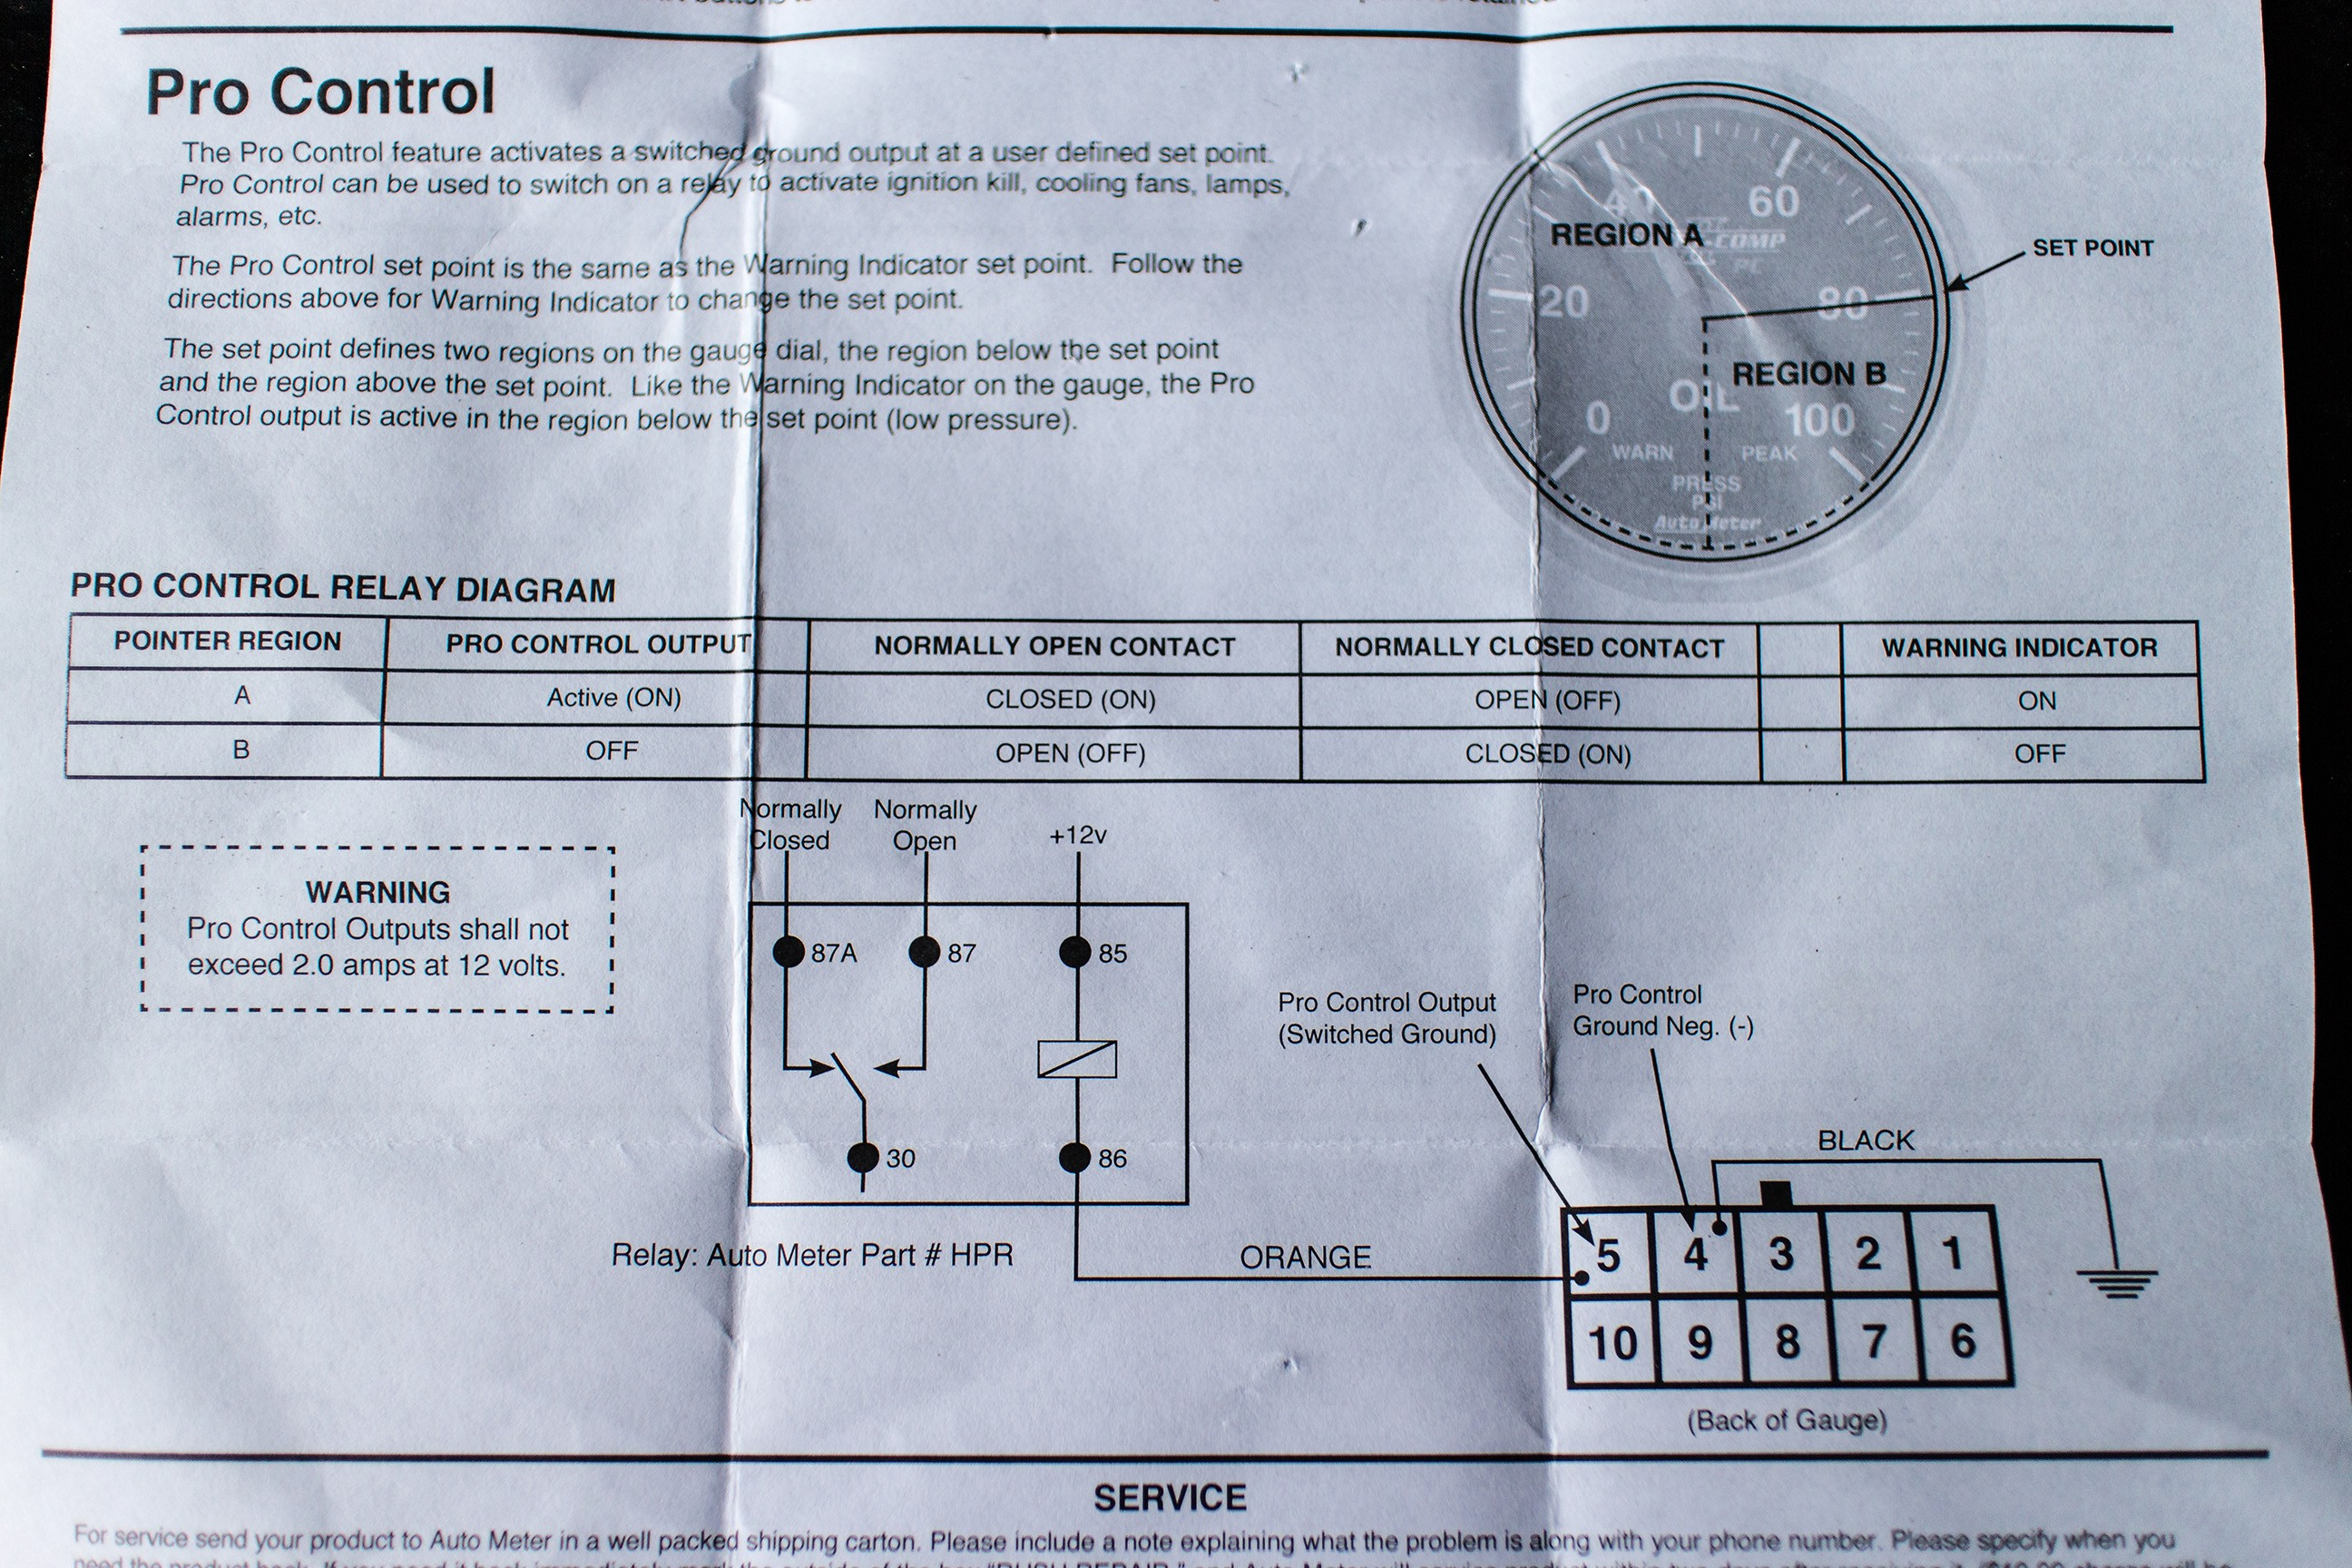 Vdo Gauge Wiring Diagram] Diagram Autometer Water Temp Gauge Wiring Diagram Of Vdo Gauge Wiring